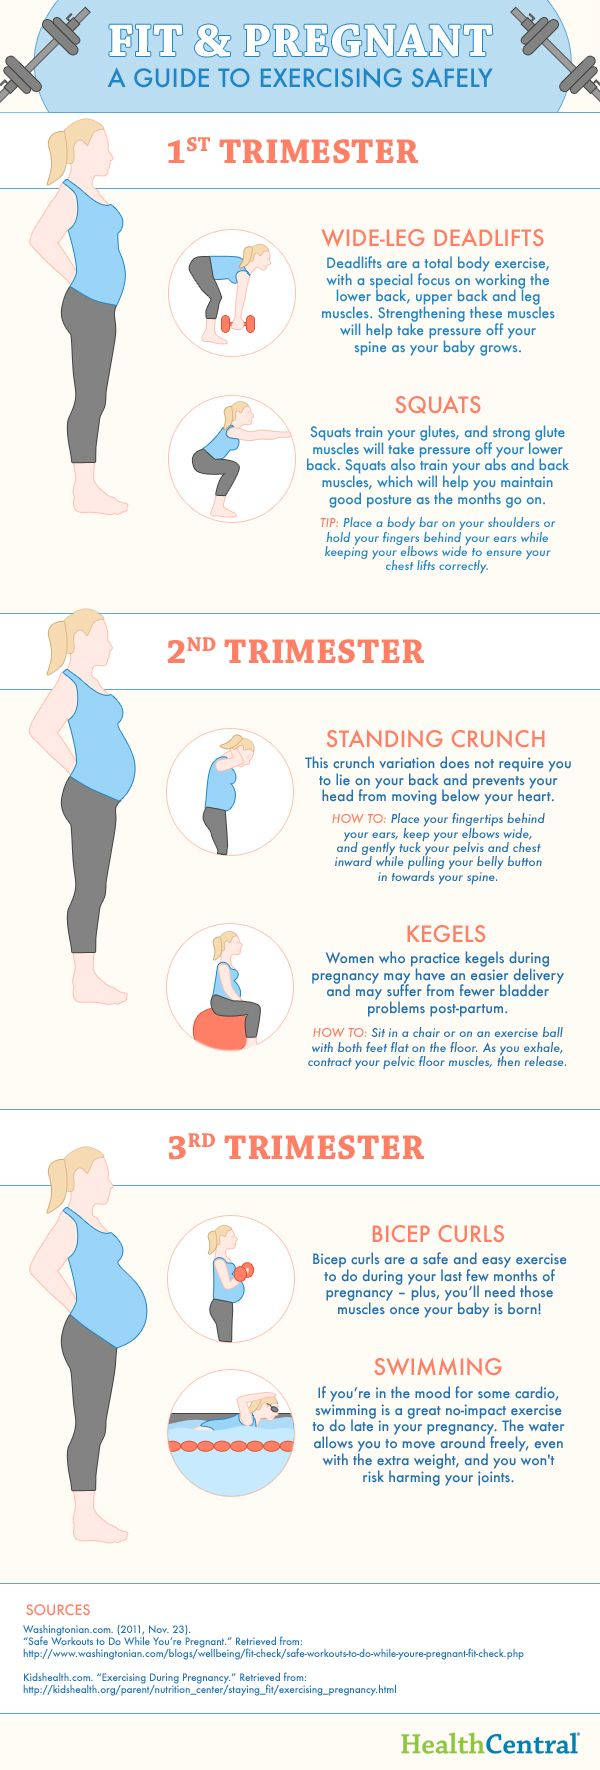 Pregnant, thinking about getting pregnant or know someone who is? This infographic gives you tips on how to exercise through every trimester. Great tips to know!